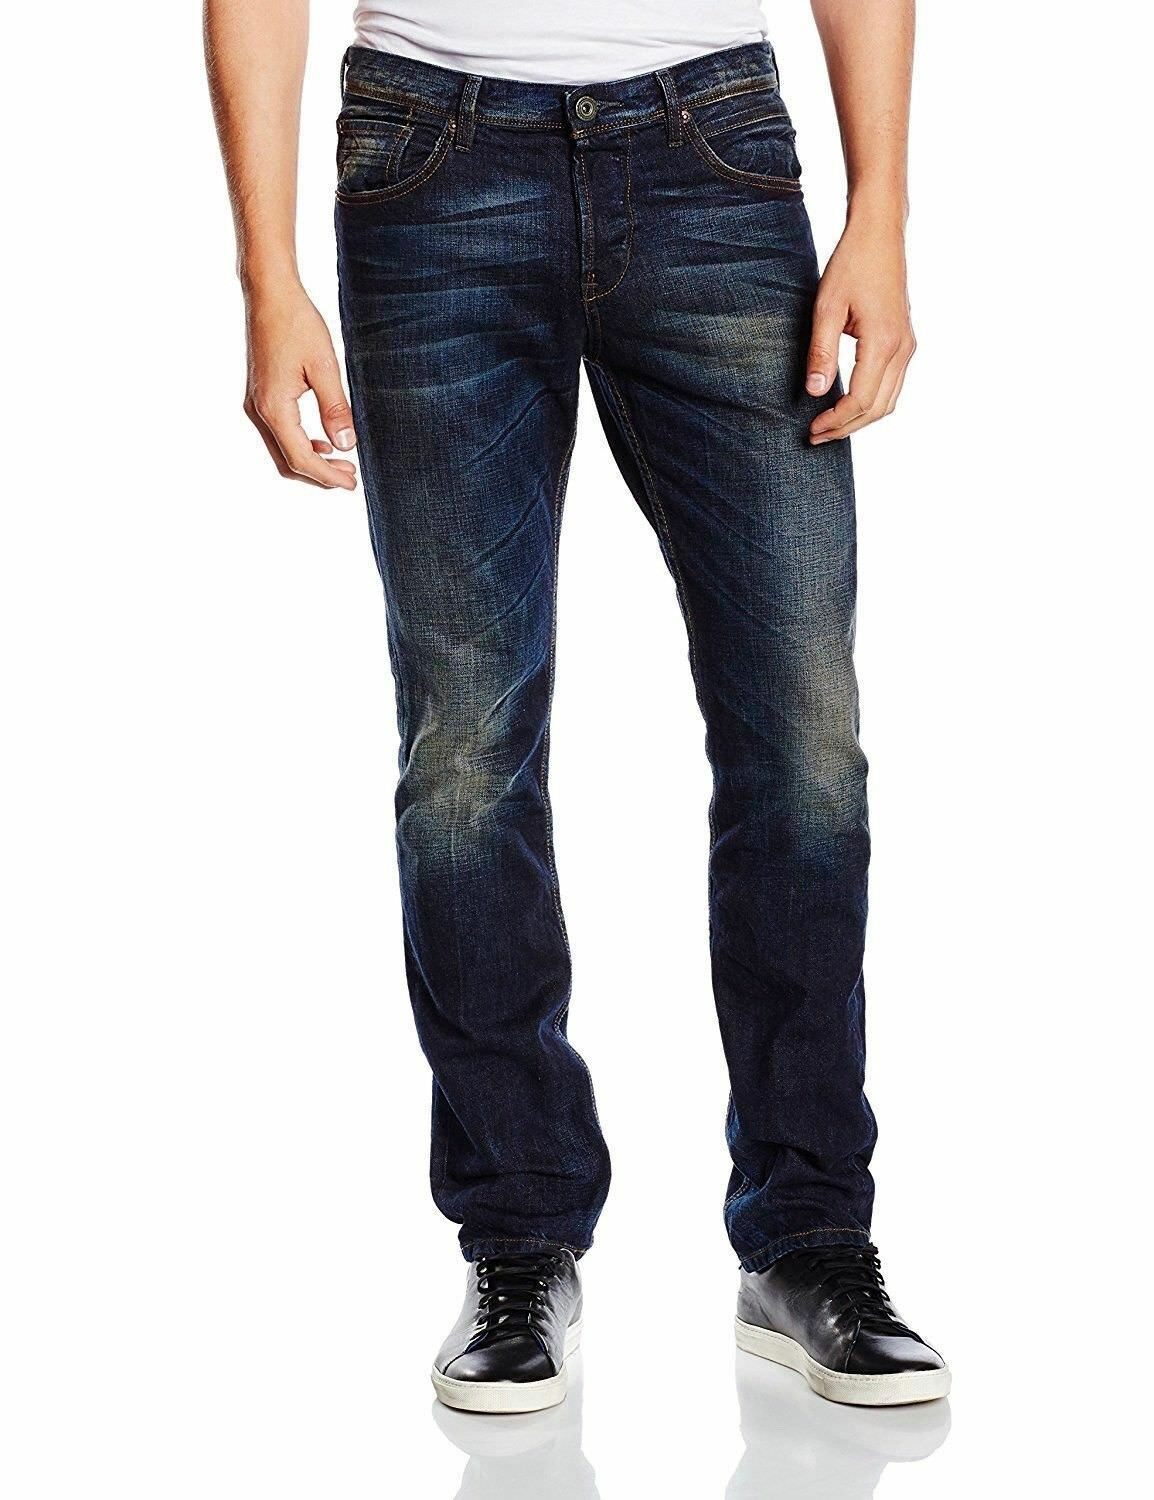 Tom Tailor Denim Jeans Uomo, Aedan, Aedan, Aedan, blu nero denim, w31 l34, Blu scuro 929b5f